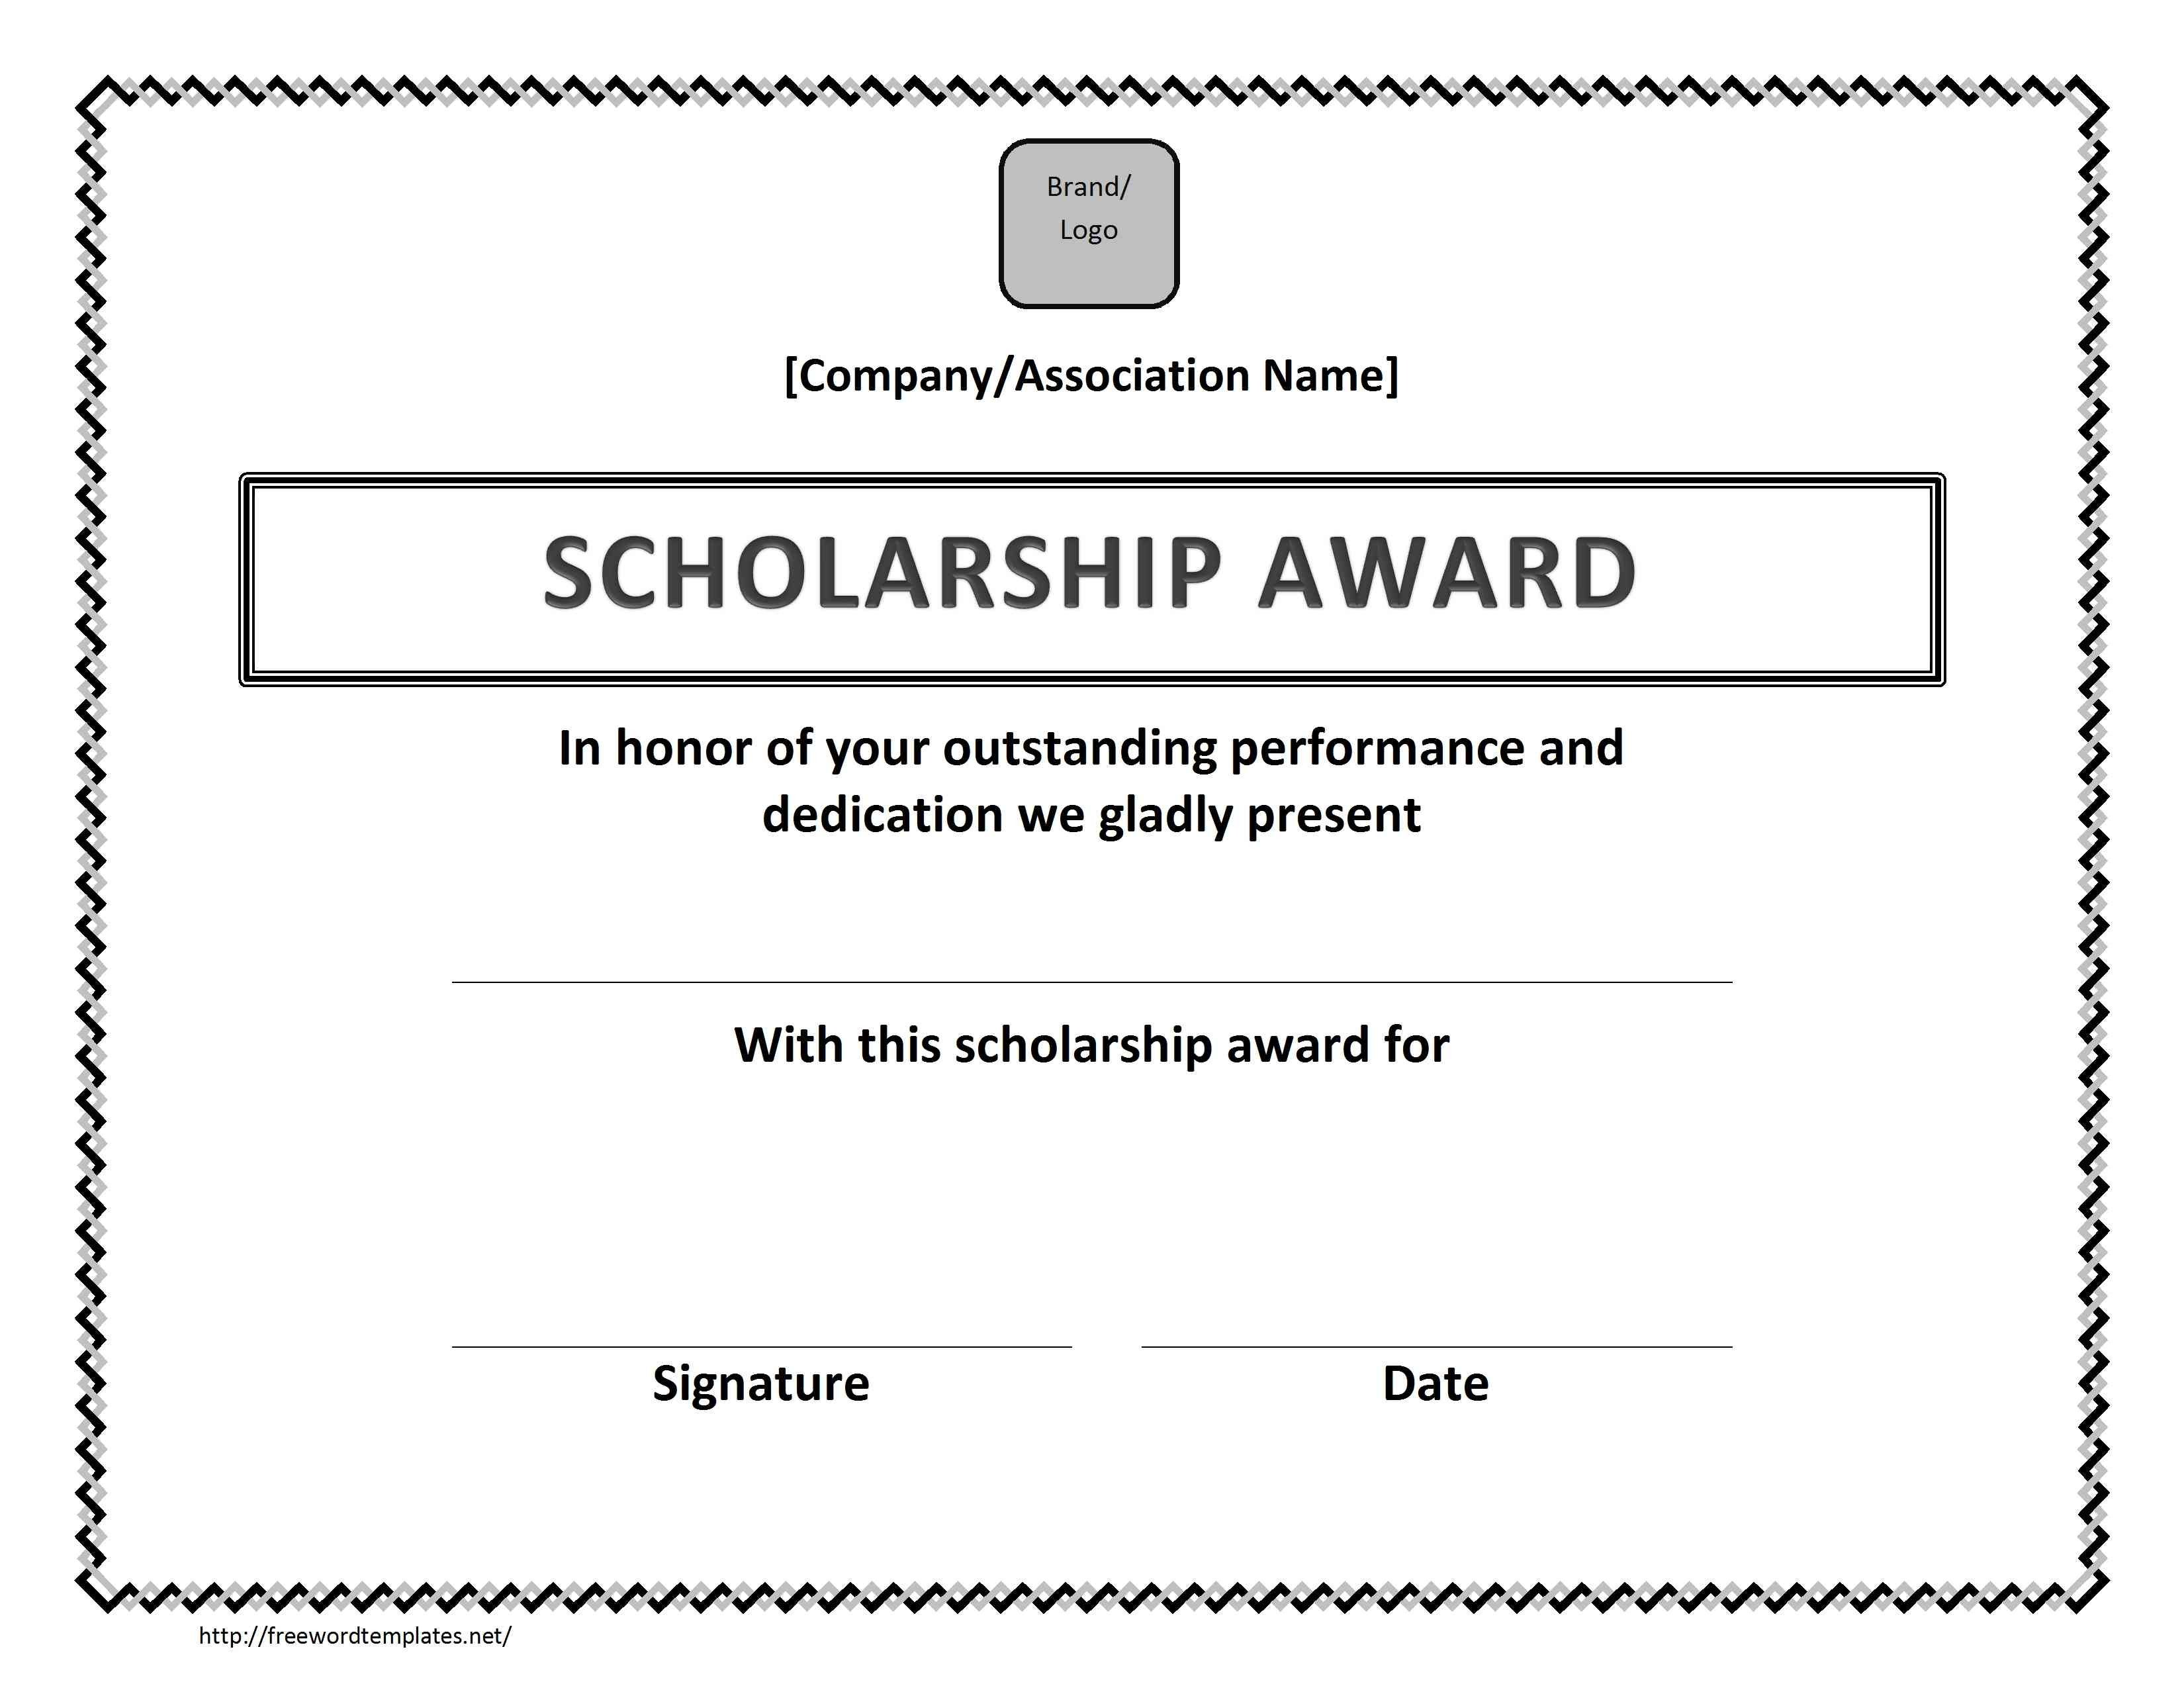 Scholarship Certificate Template Free Scholarship Award Certificate Template